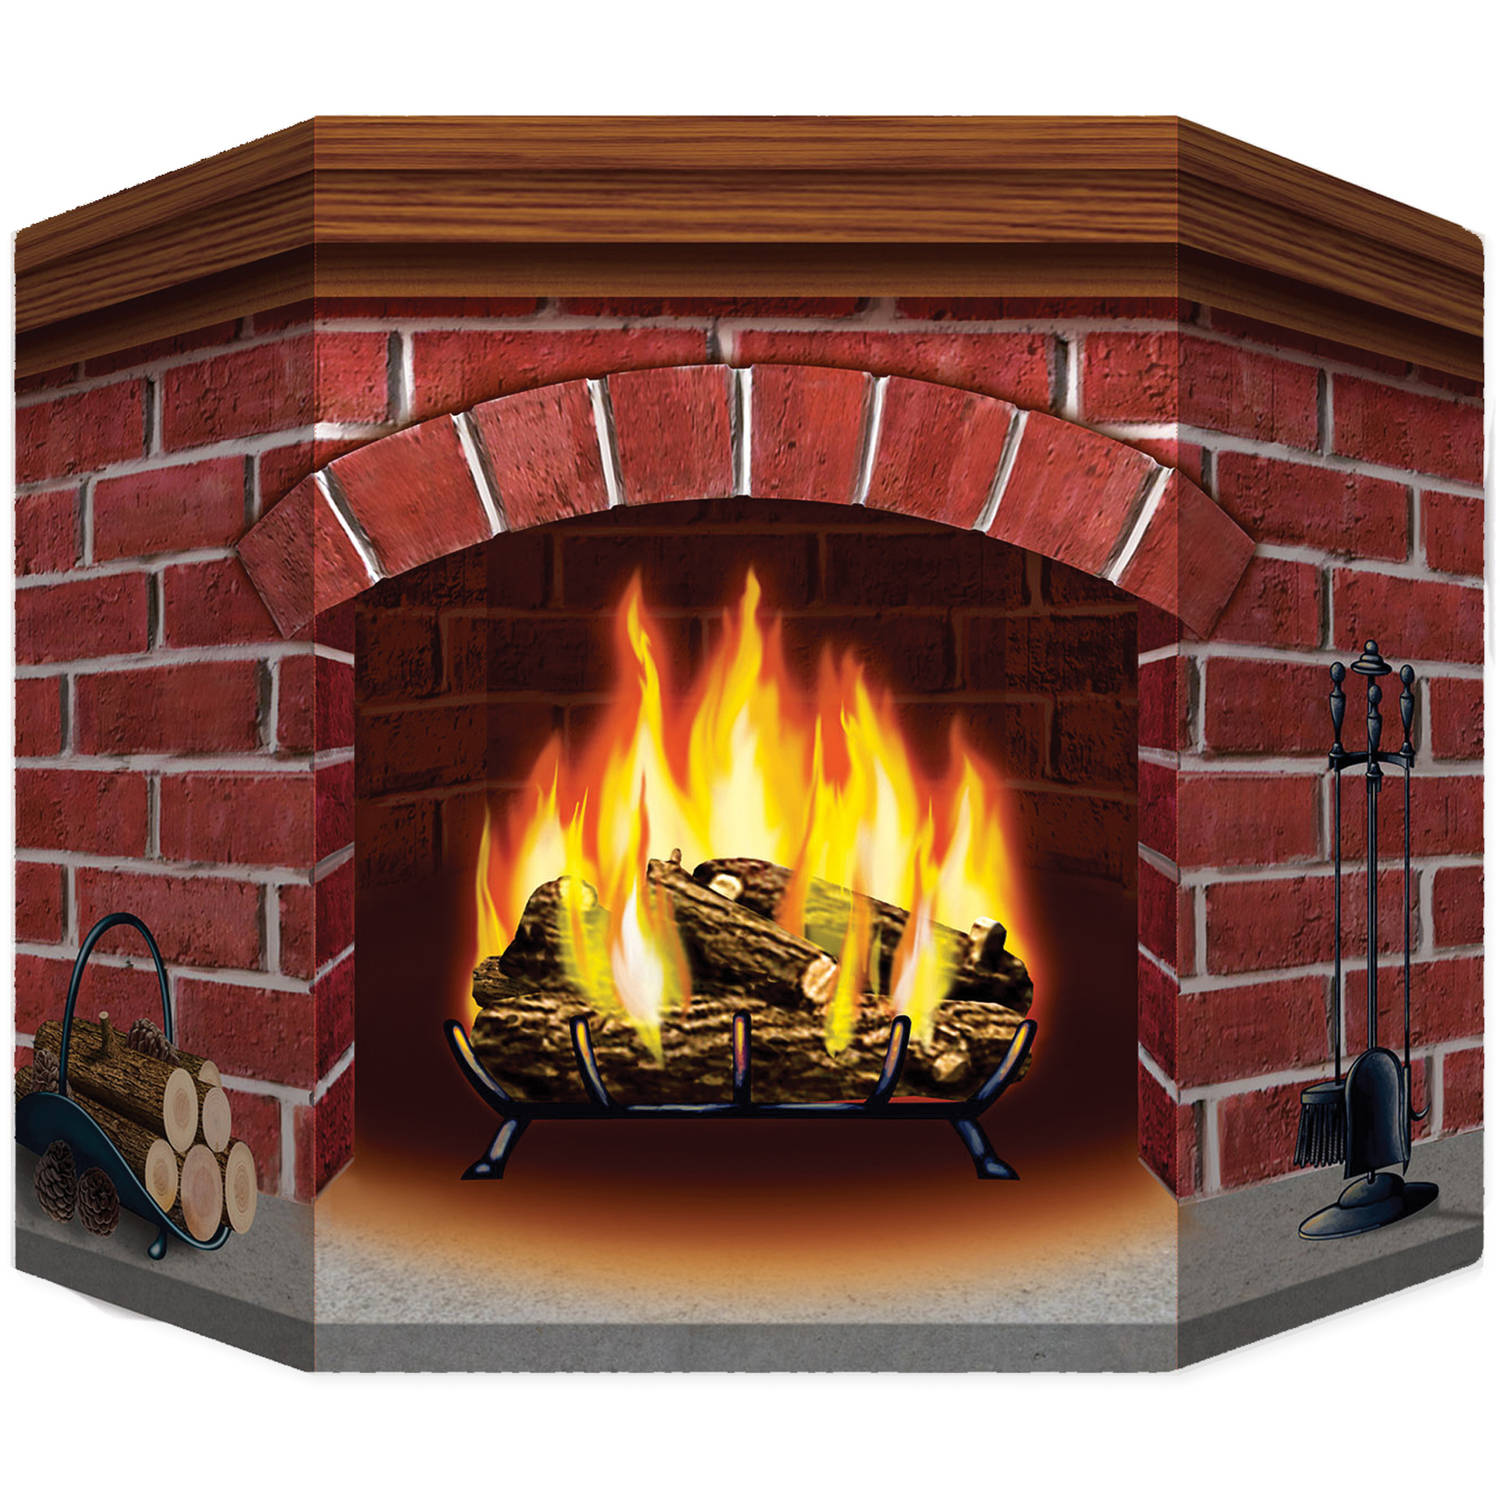 How To Decorate A Brick Fireplace Brick Fireplace Standup Halloween Decoration